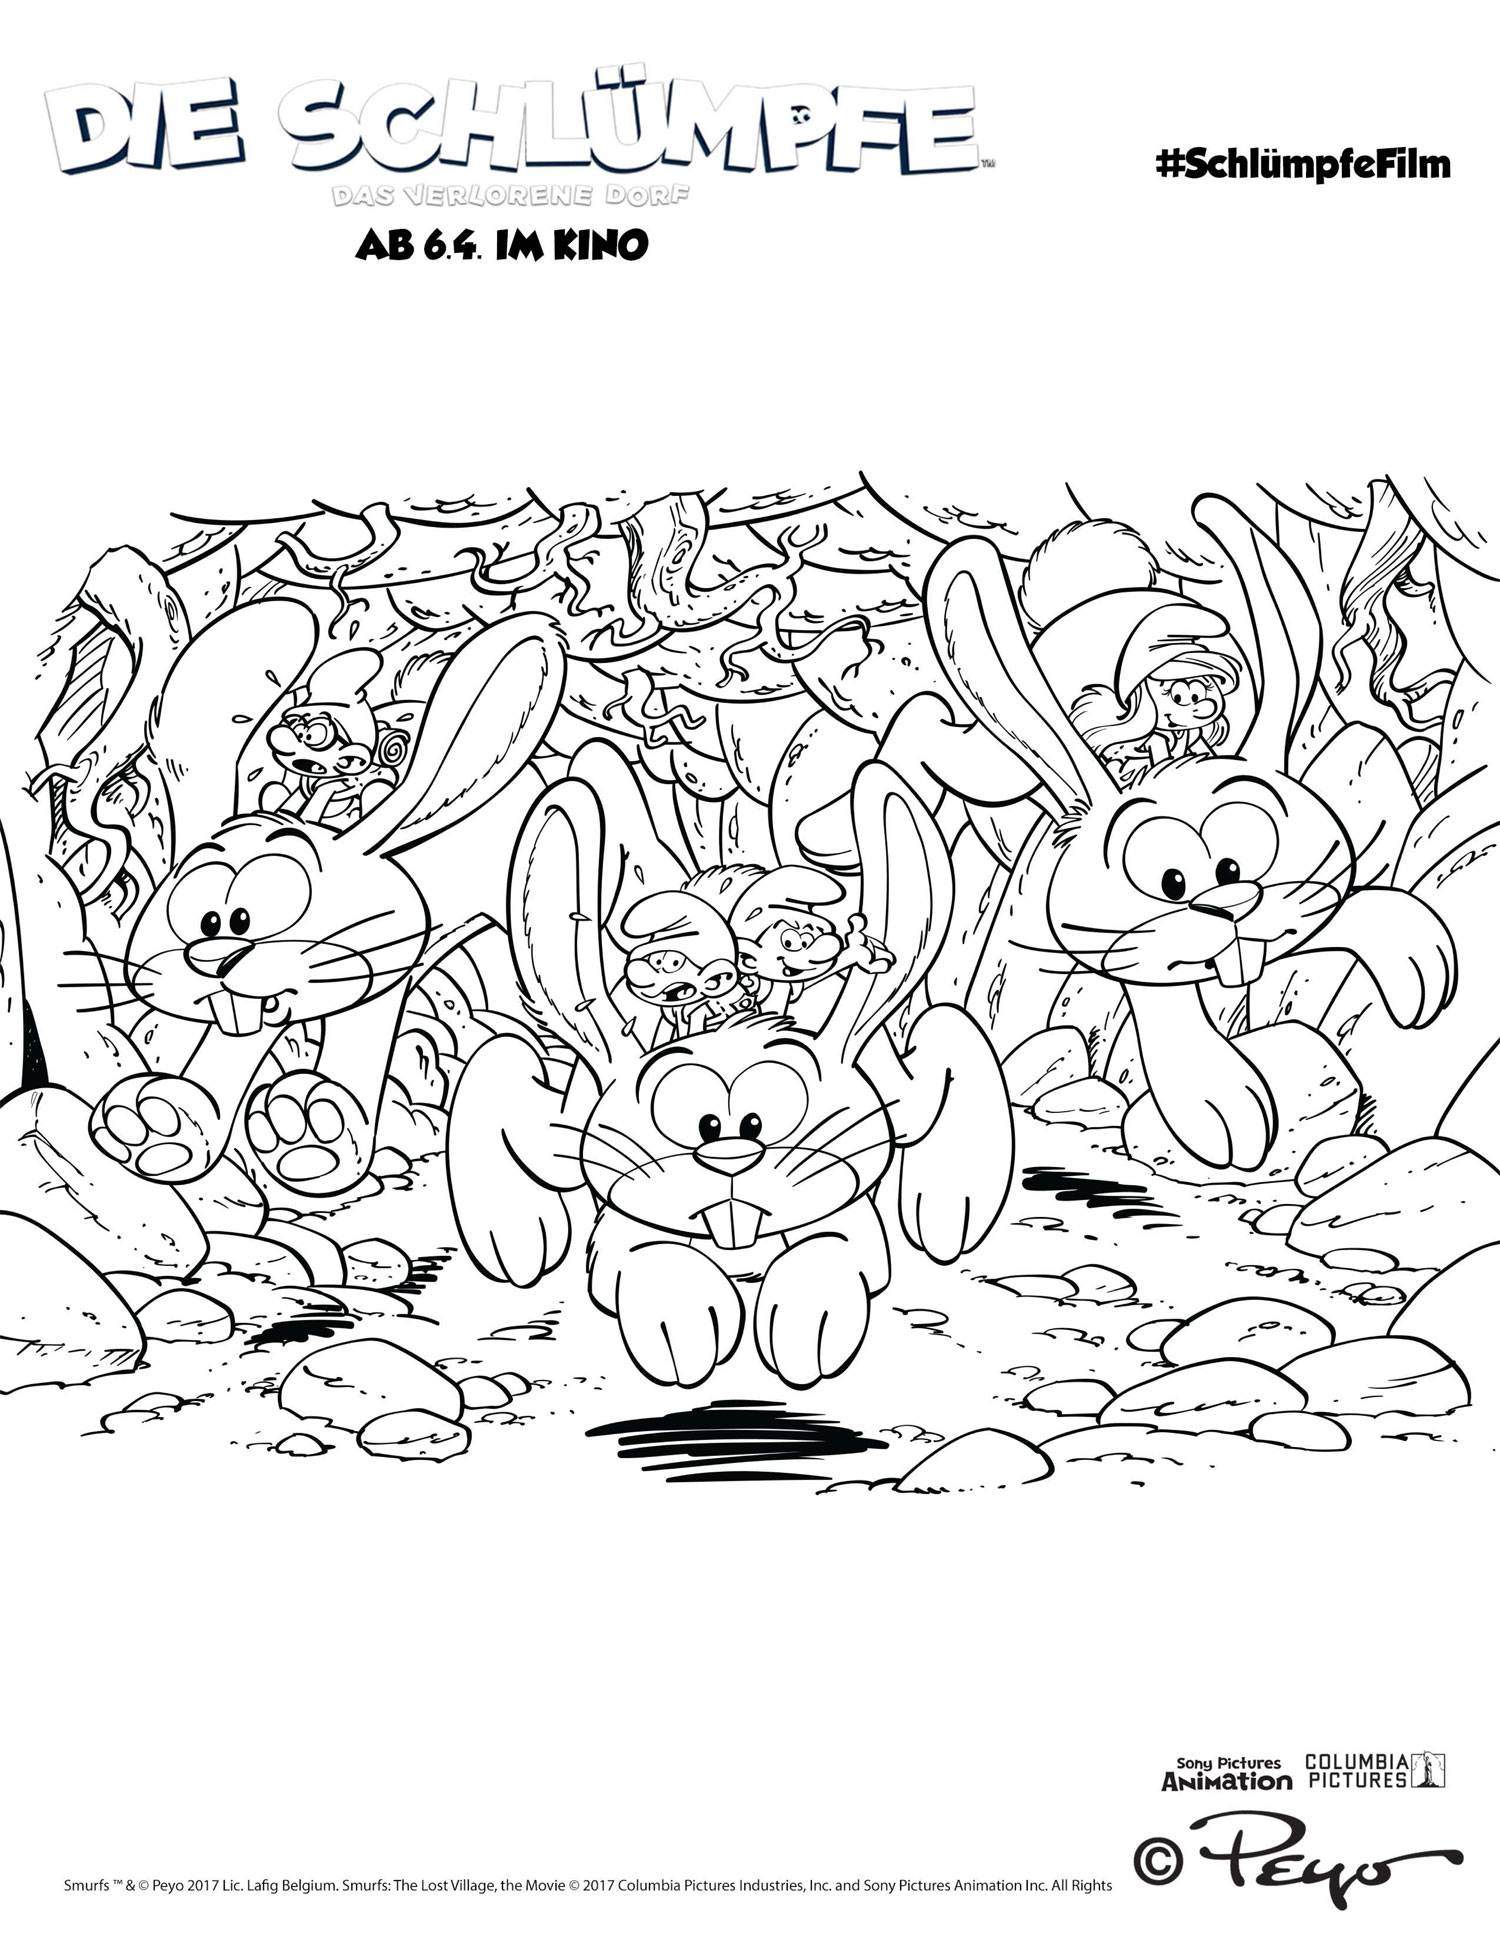 Clumsy Smurf Coloring Pages